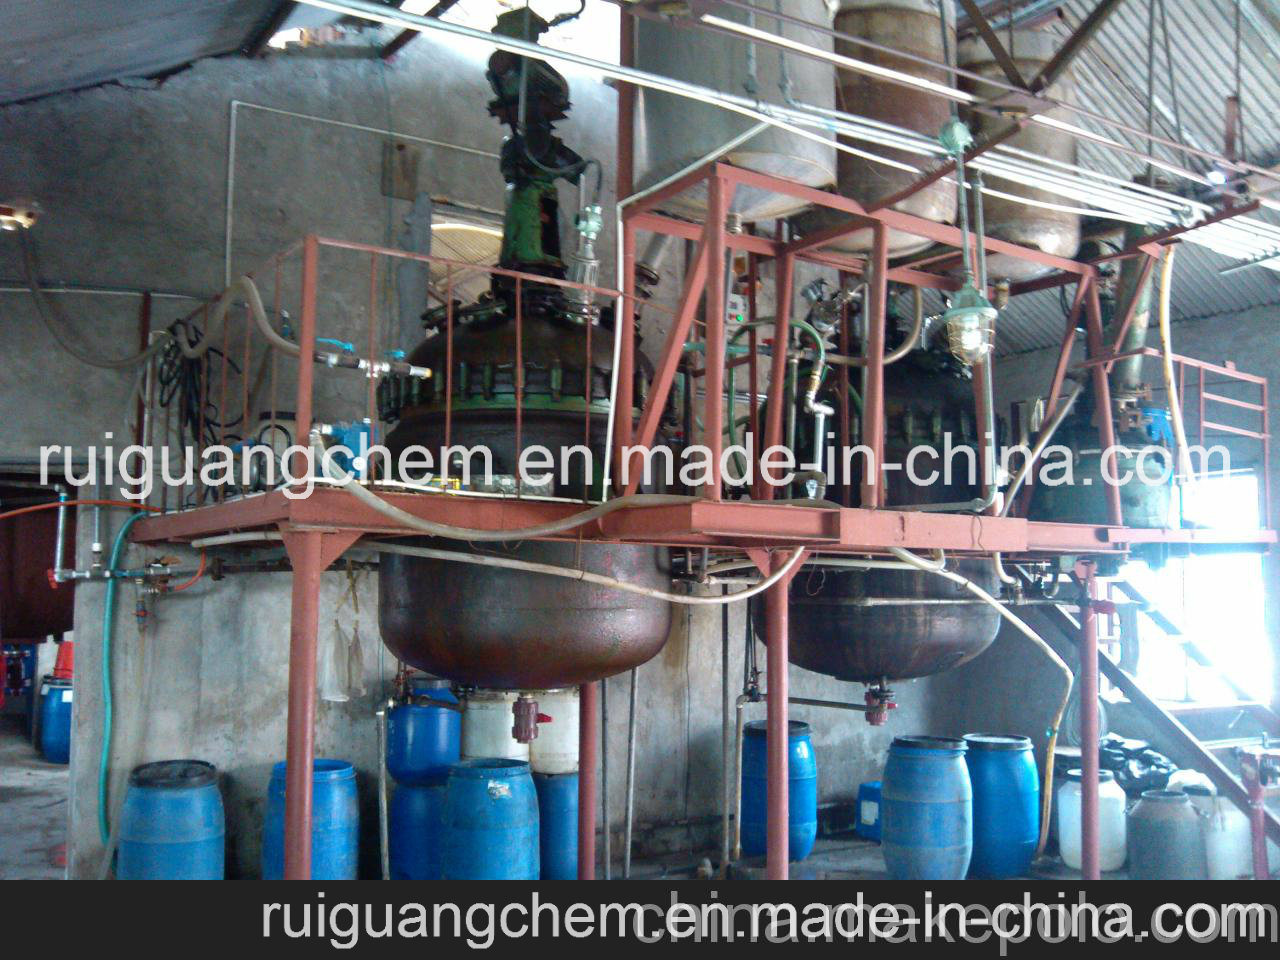 Detergent for Textile Printing